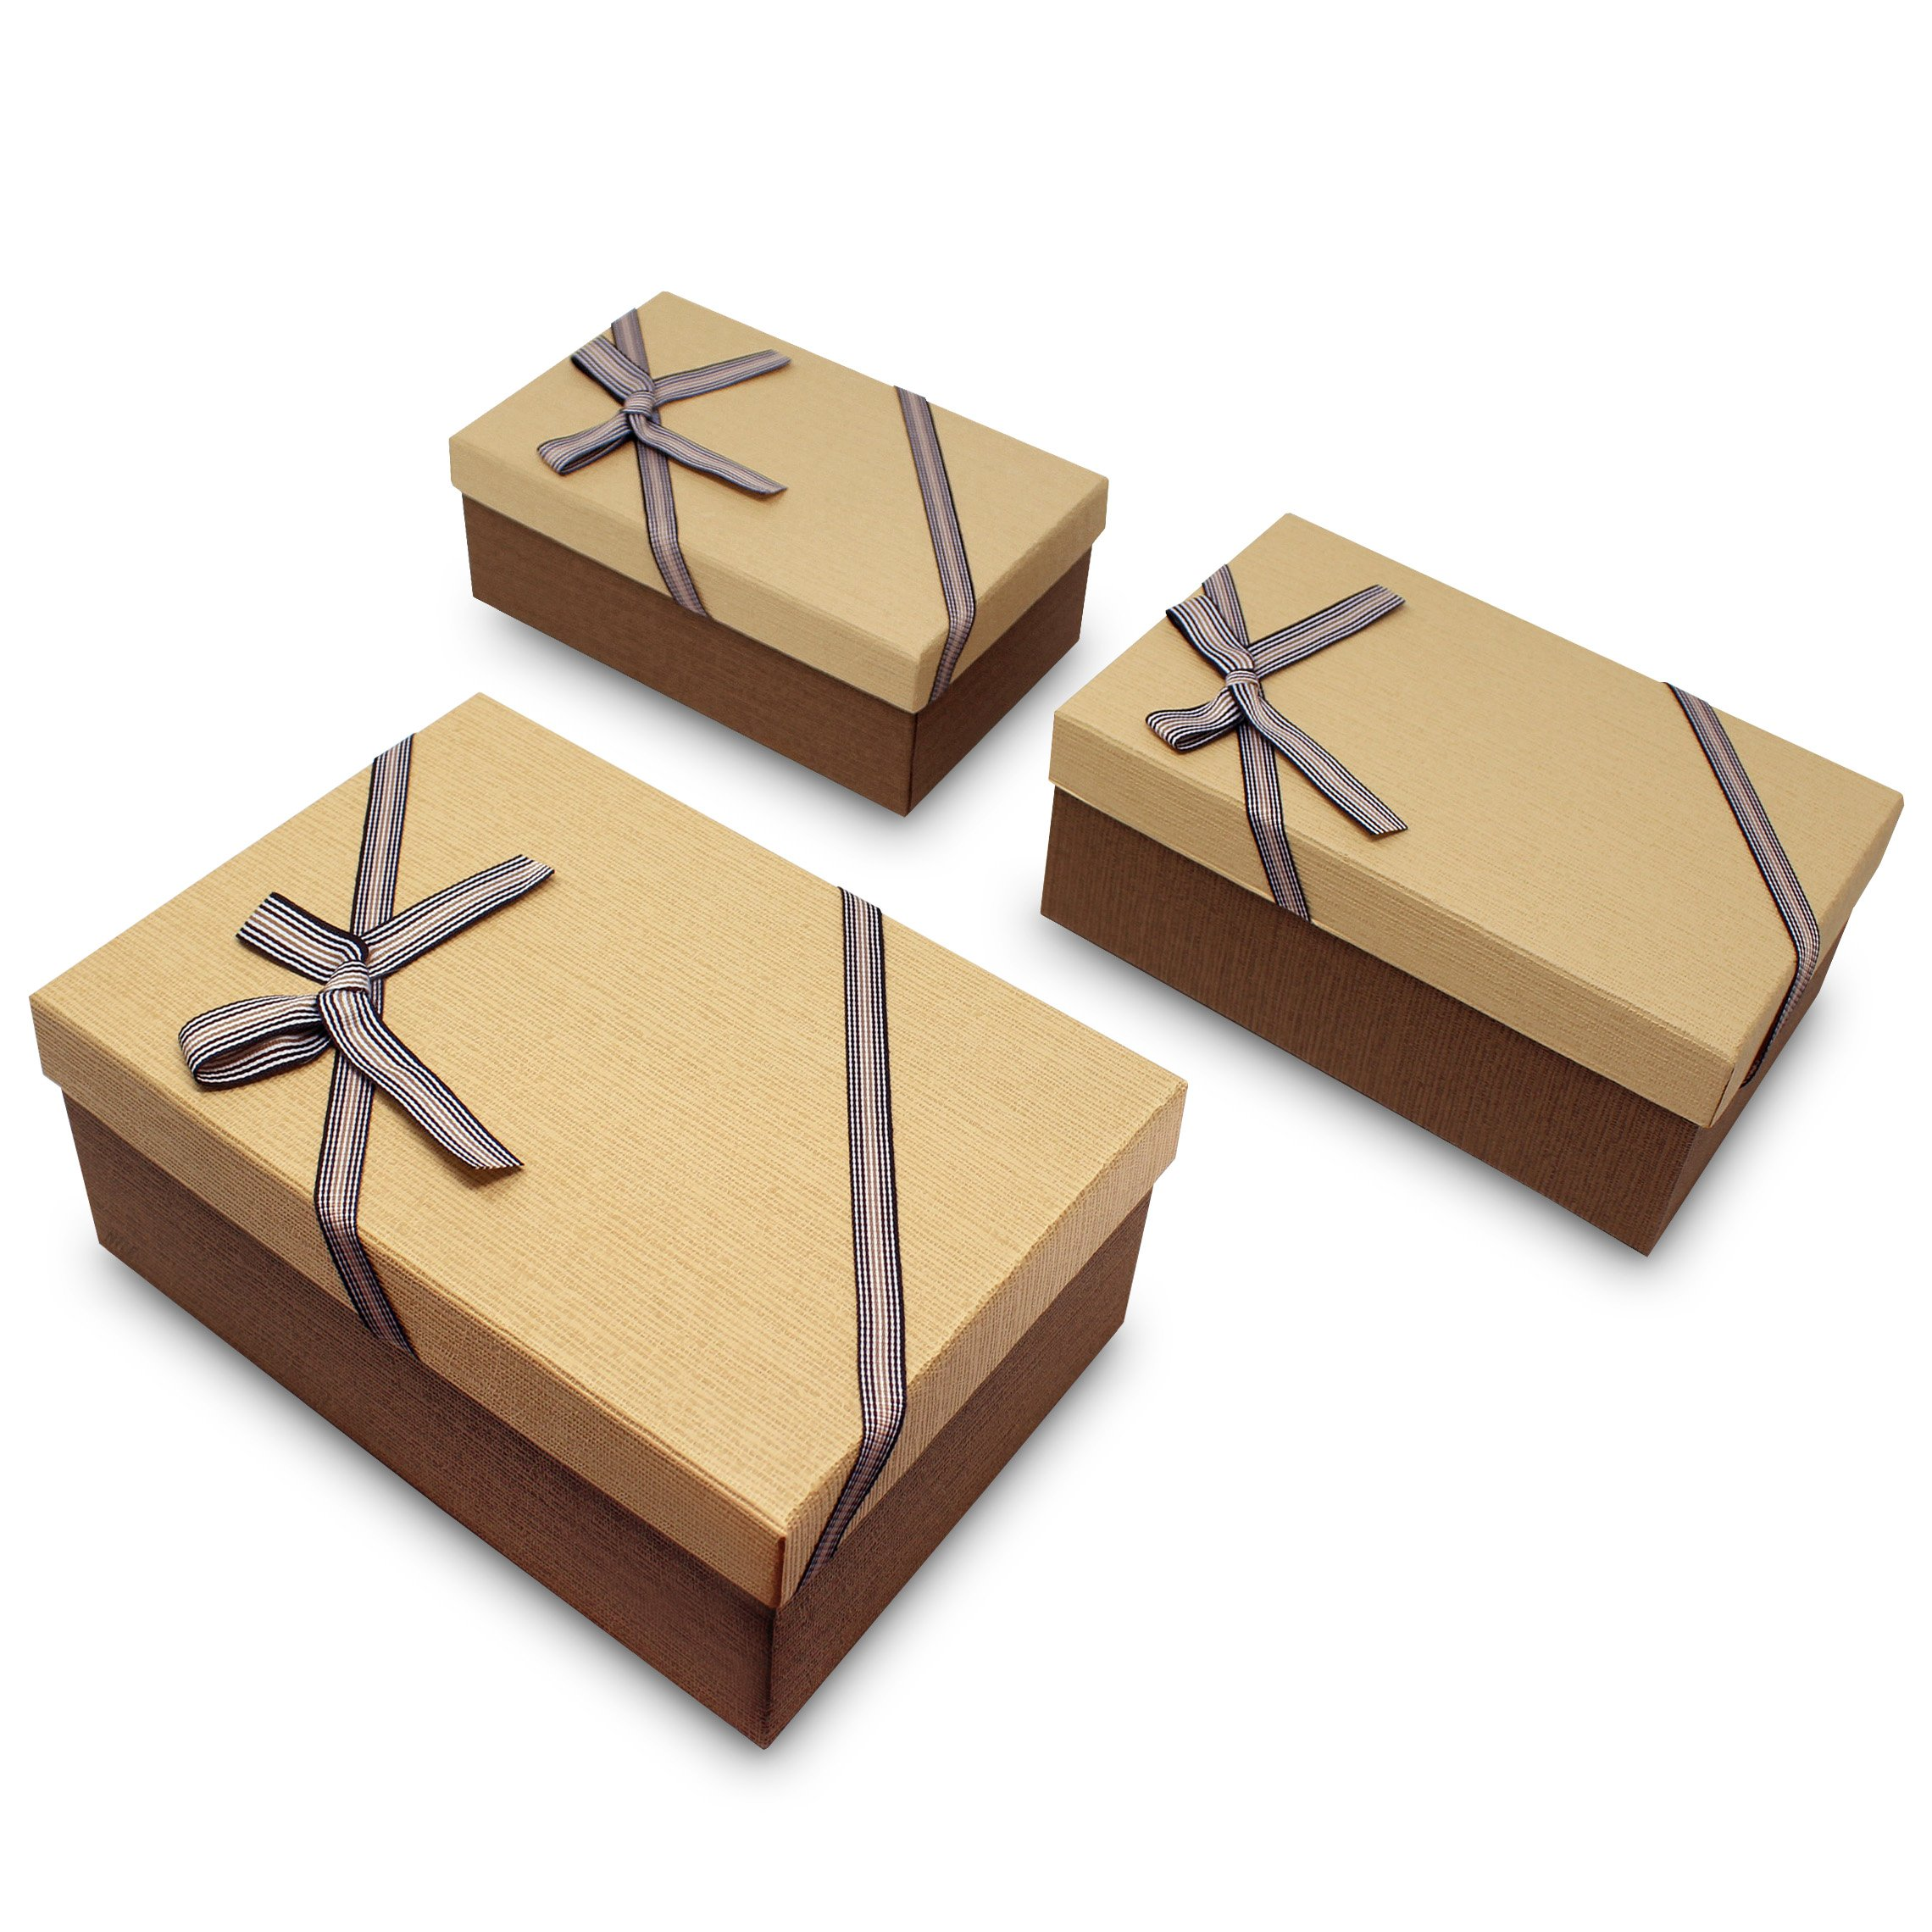 Ikee Design Elegant Decorative Nesting Gift Boxes, A Set of 3, Light Brown with A Bow tie